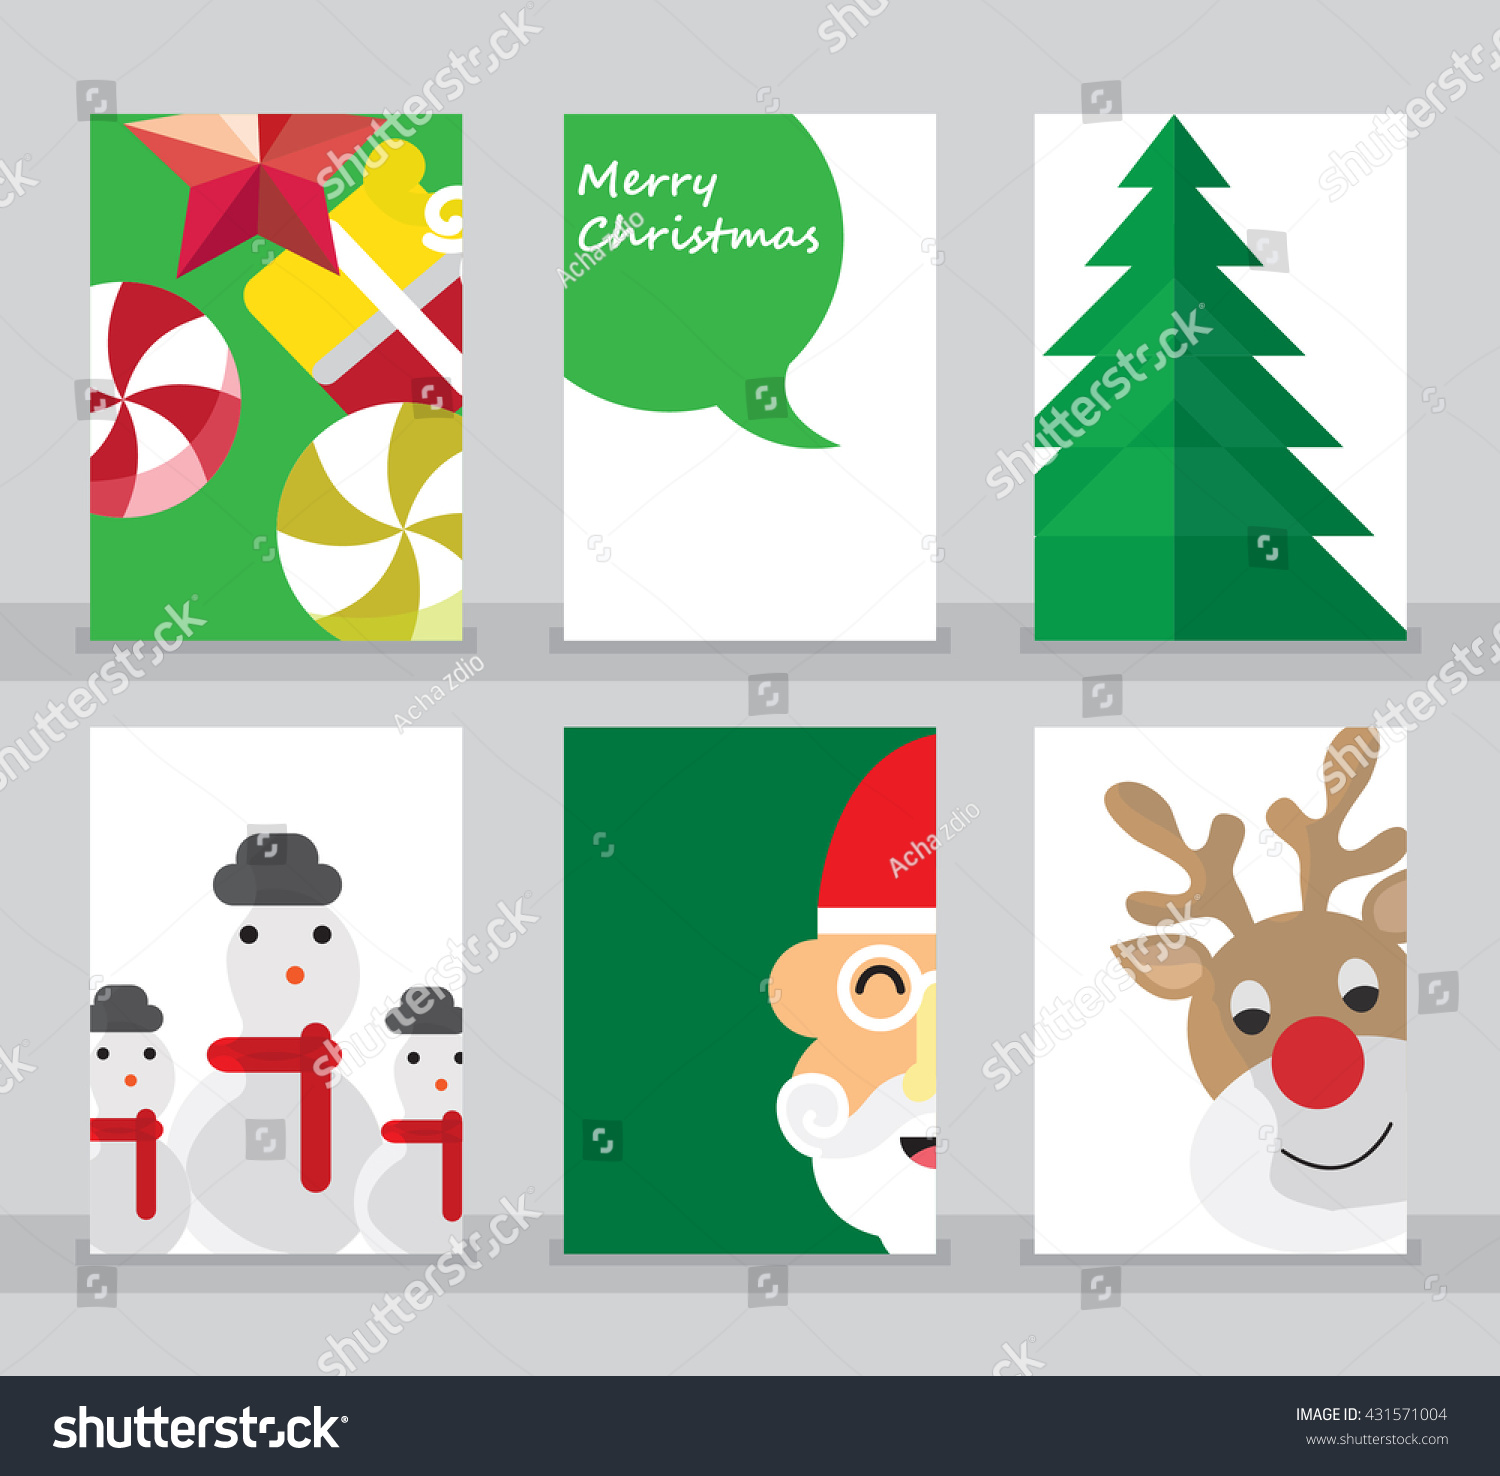 happy birthday merry christmas greeting and invitation card there are teddy bear